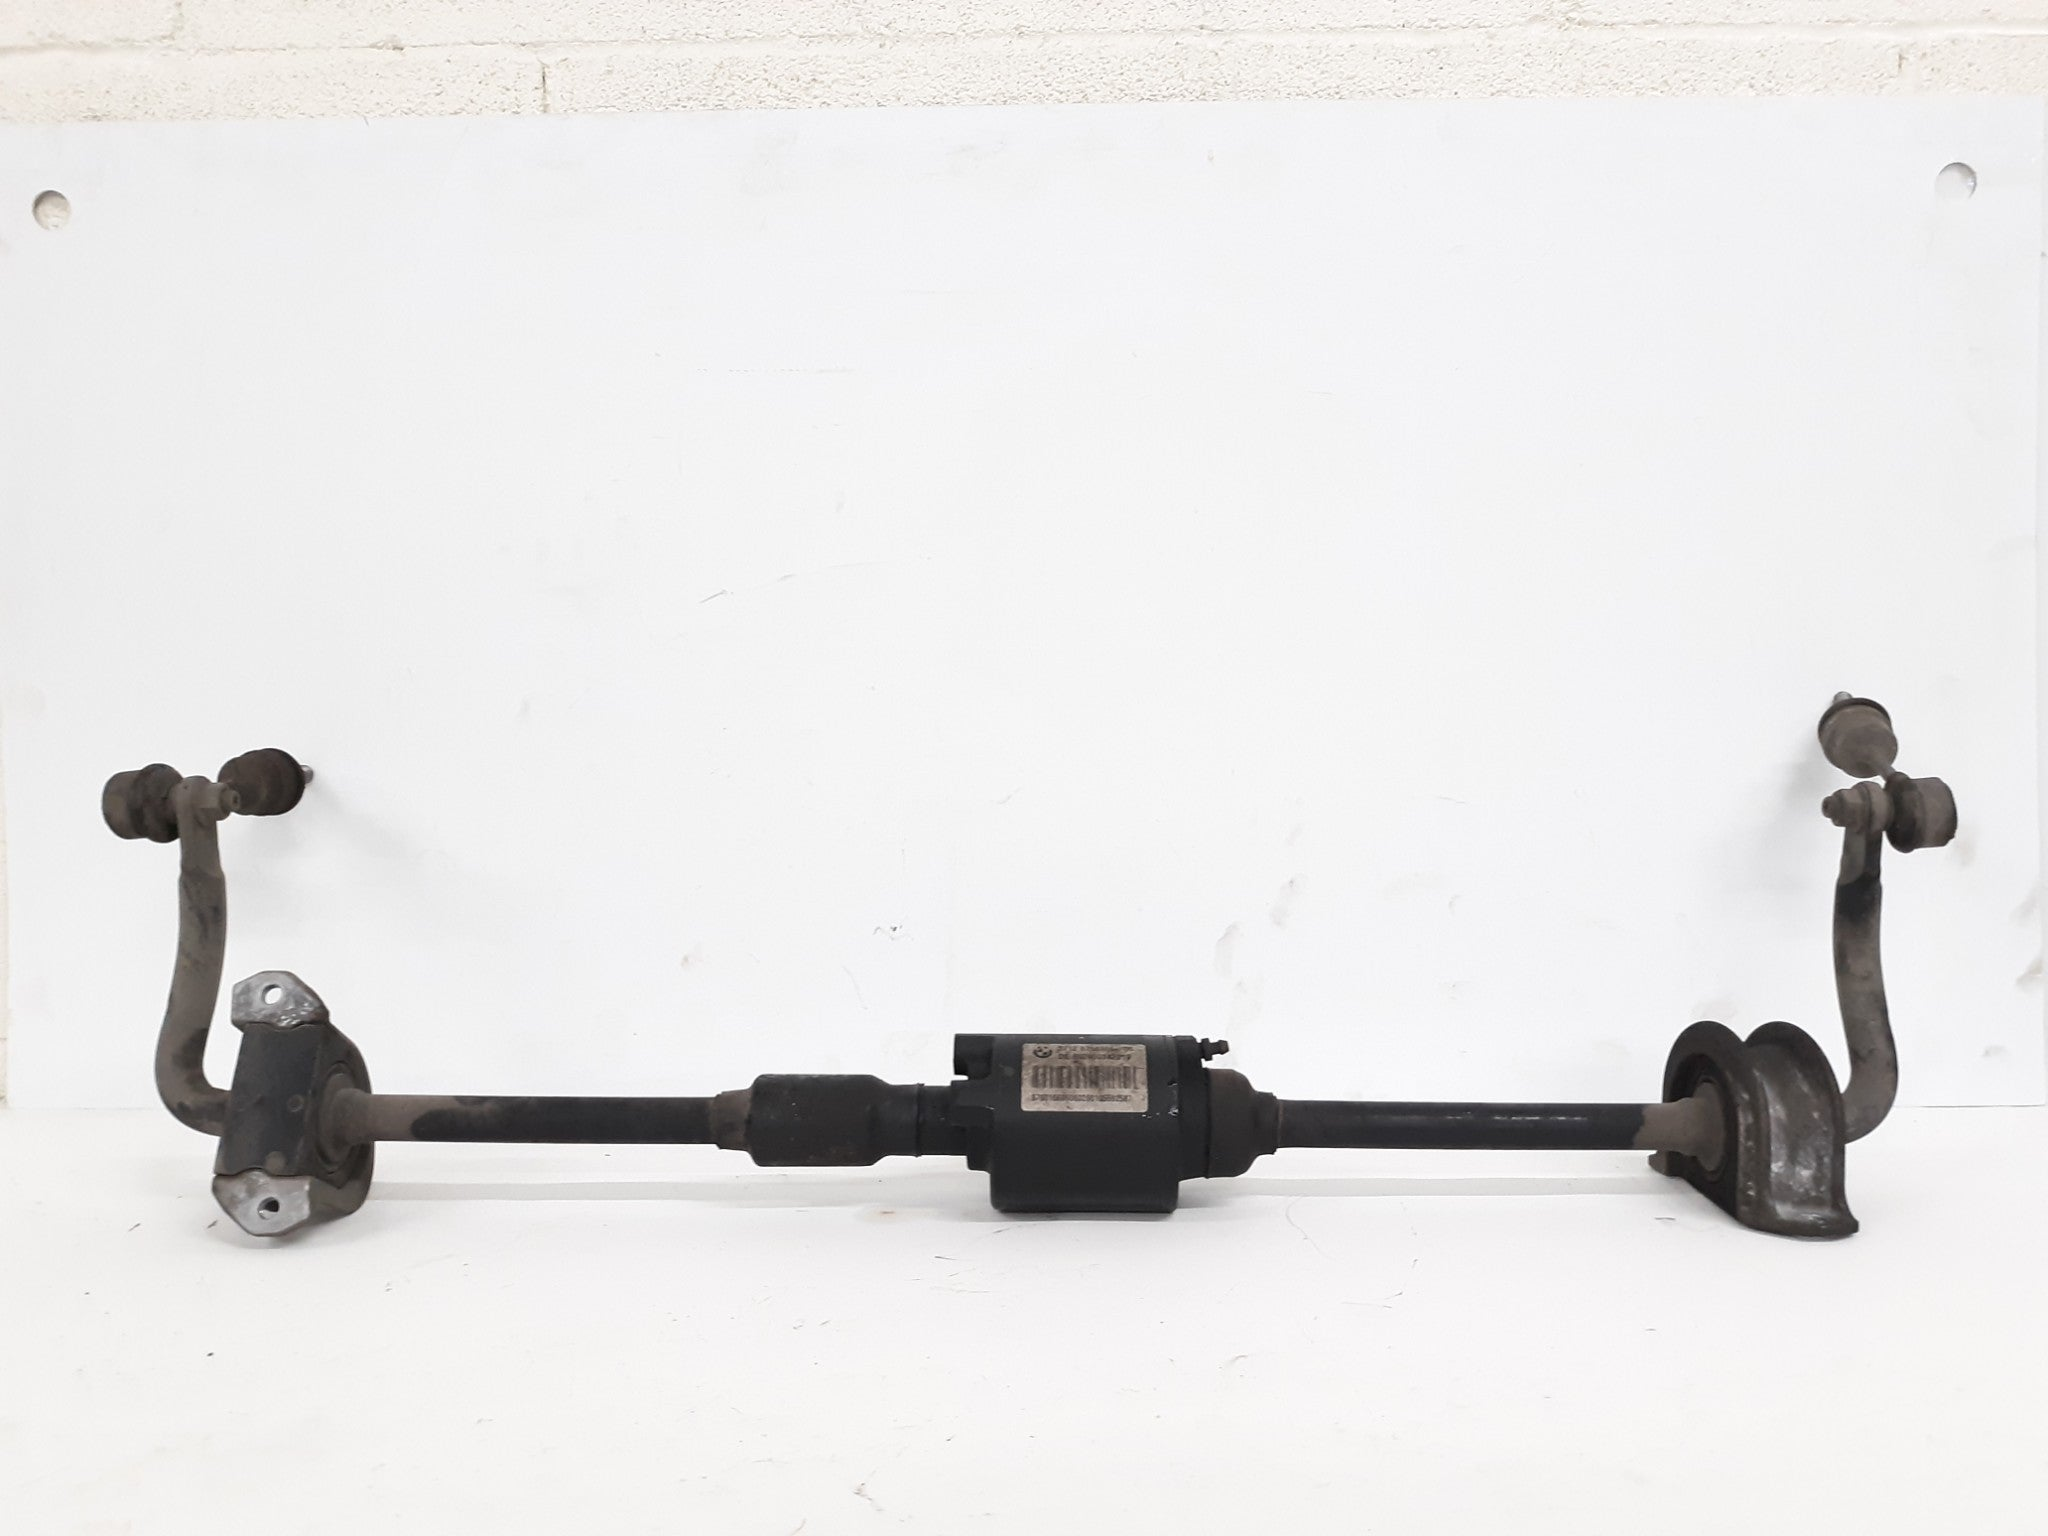 04-10 BMW 530i 535i 550i 650i REAR DYNAMIC ACTIVE STABILIZER SWAY BAR 6760166 - Click Receive Auto Parts